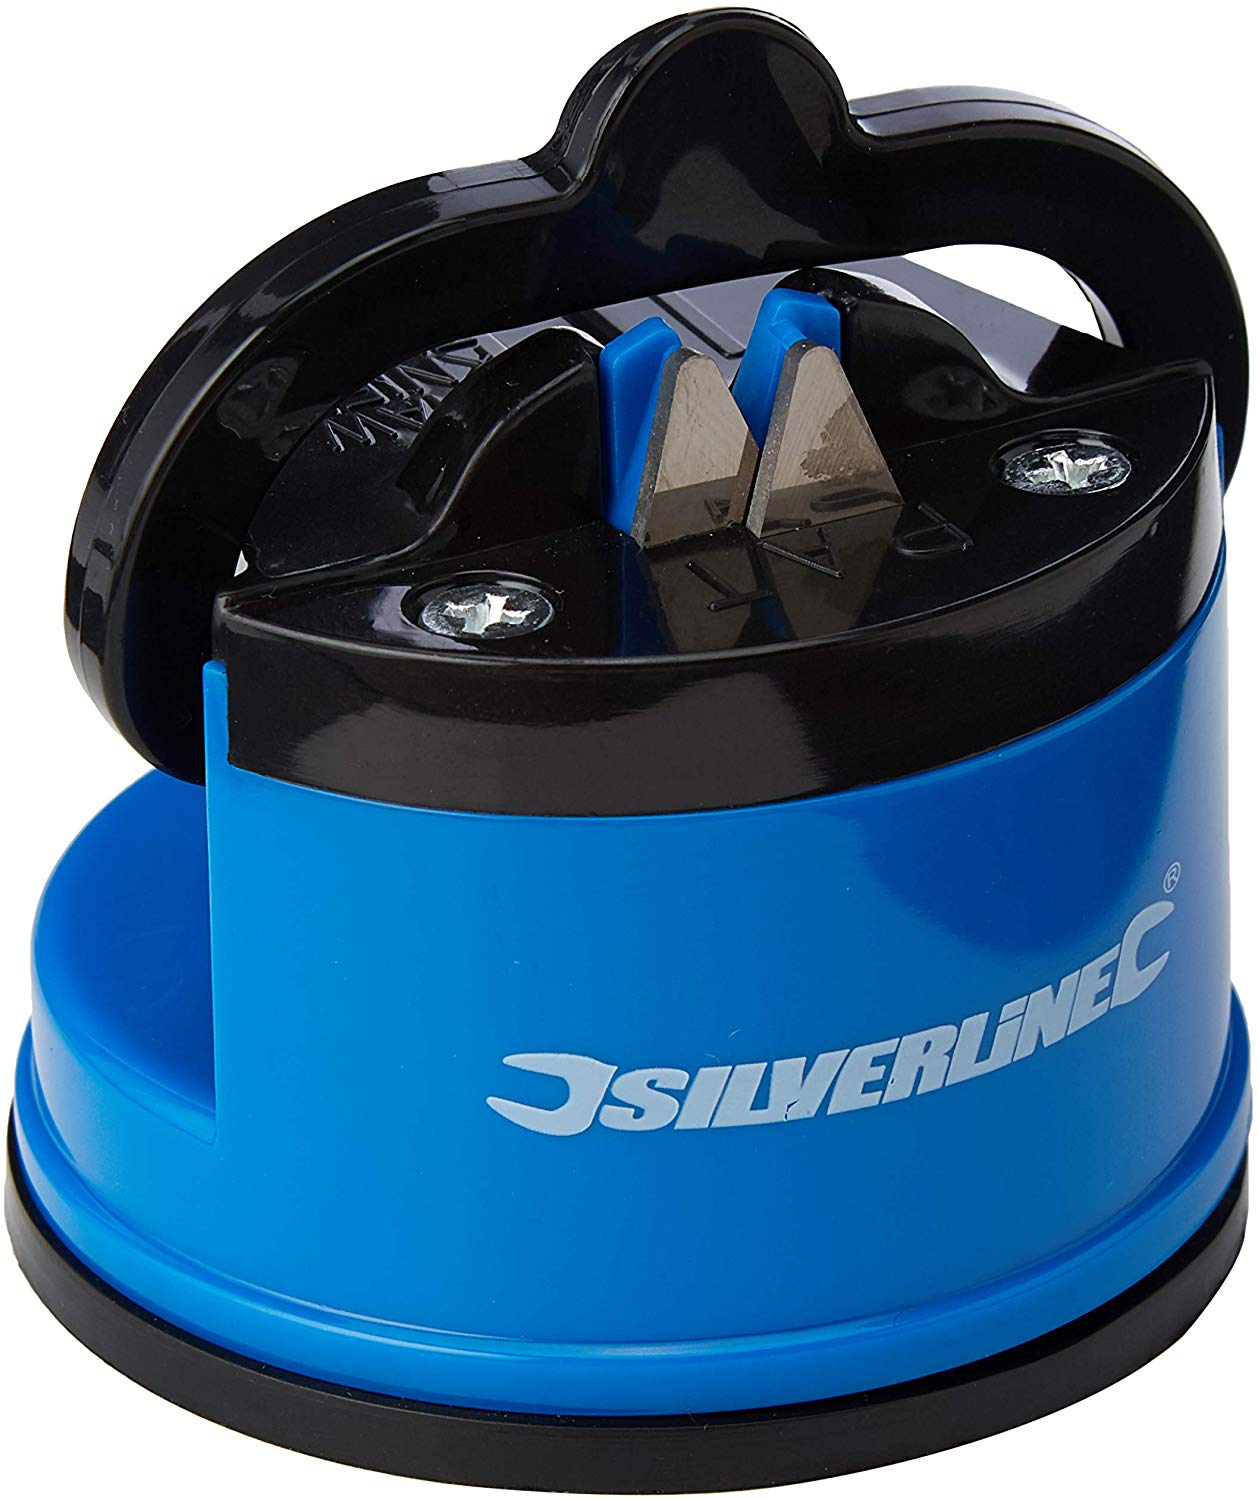 Silverline Tabletop Blade & Knife Sharpener 60 x 65 x 60mm for £3.43 (add on item)